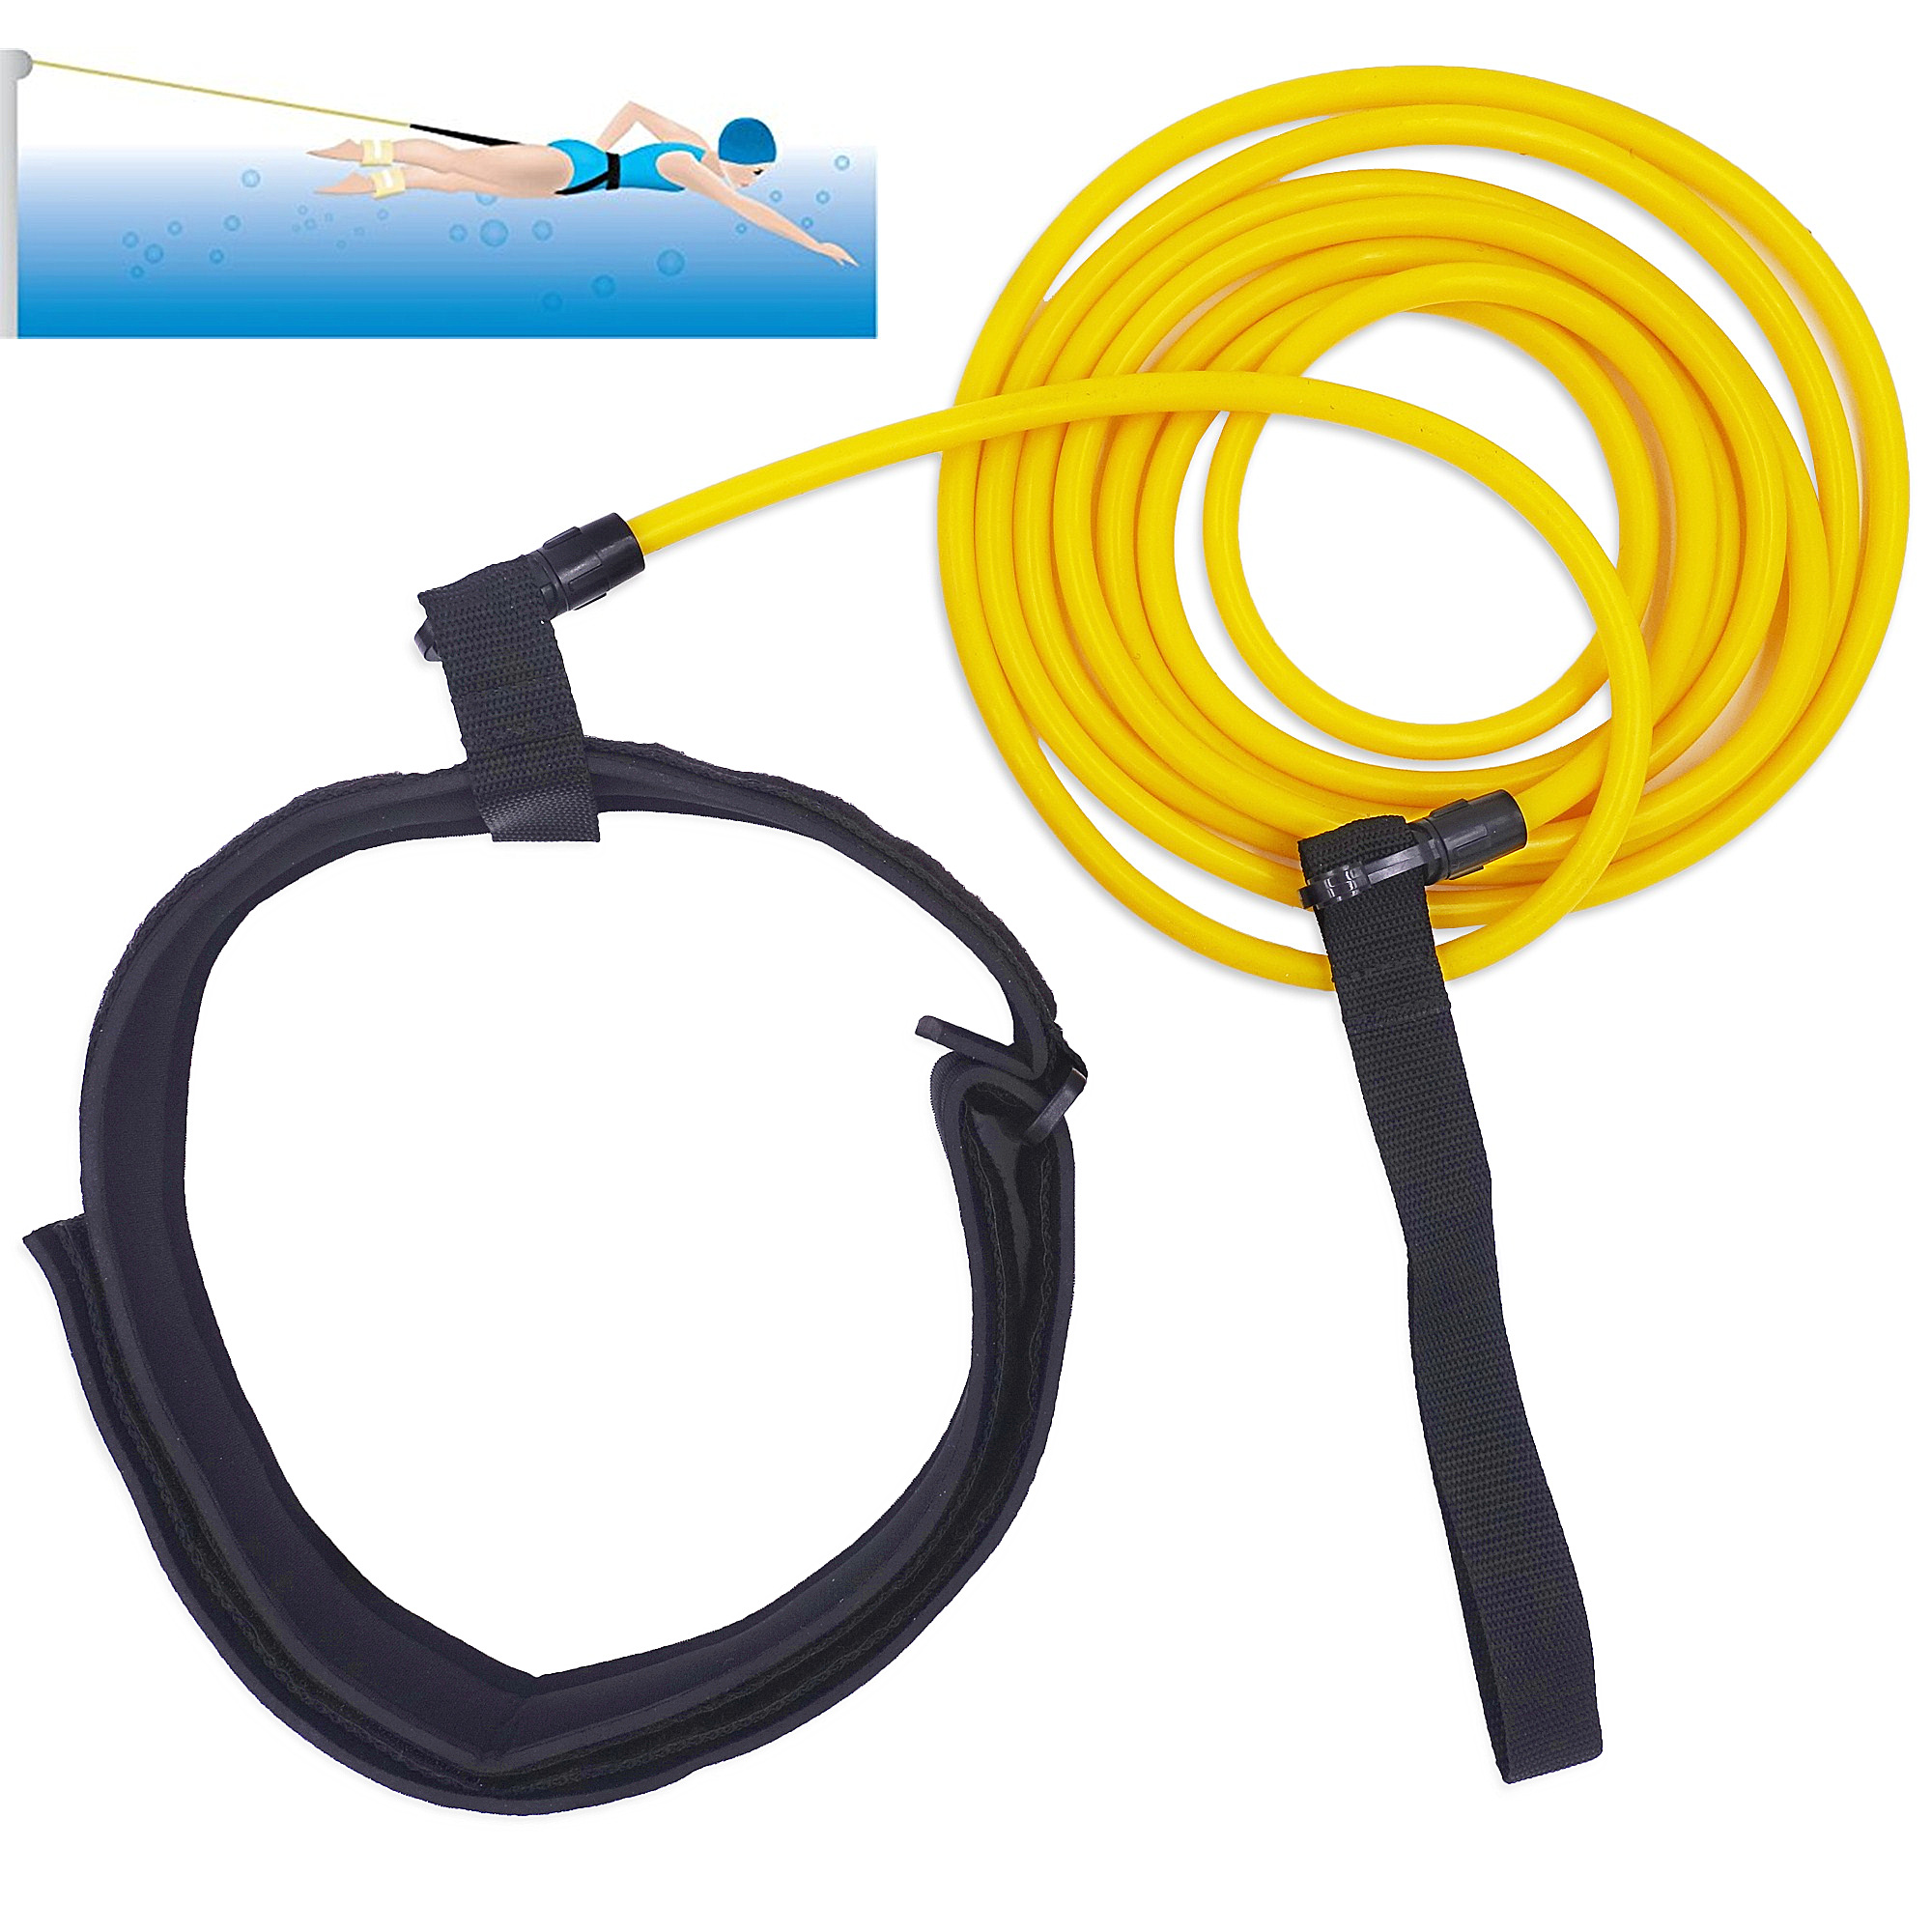 4m Swim Training Resistance Band With Adjustable Neoprene Belt Elastic Latex Bungee Cords Tether For Adult Kids Pool Swimming